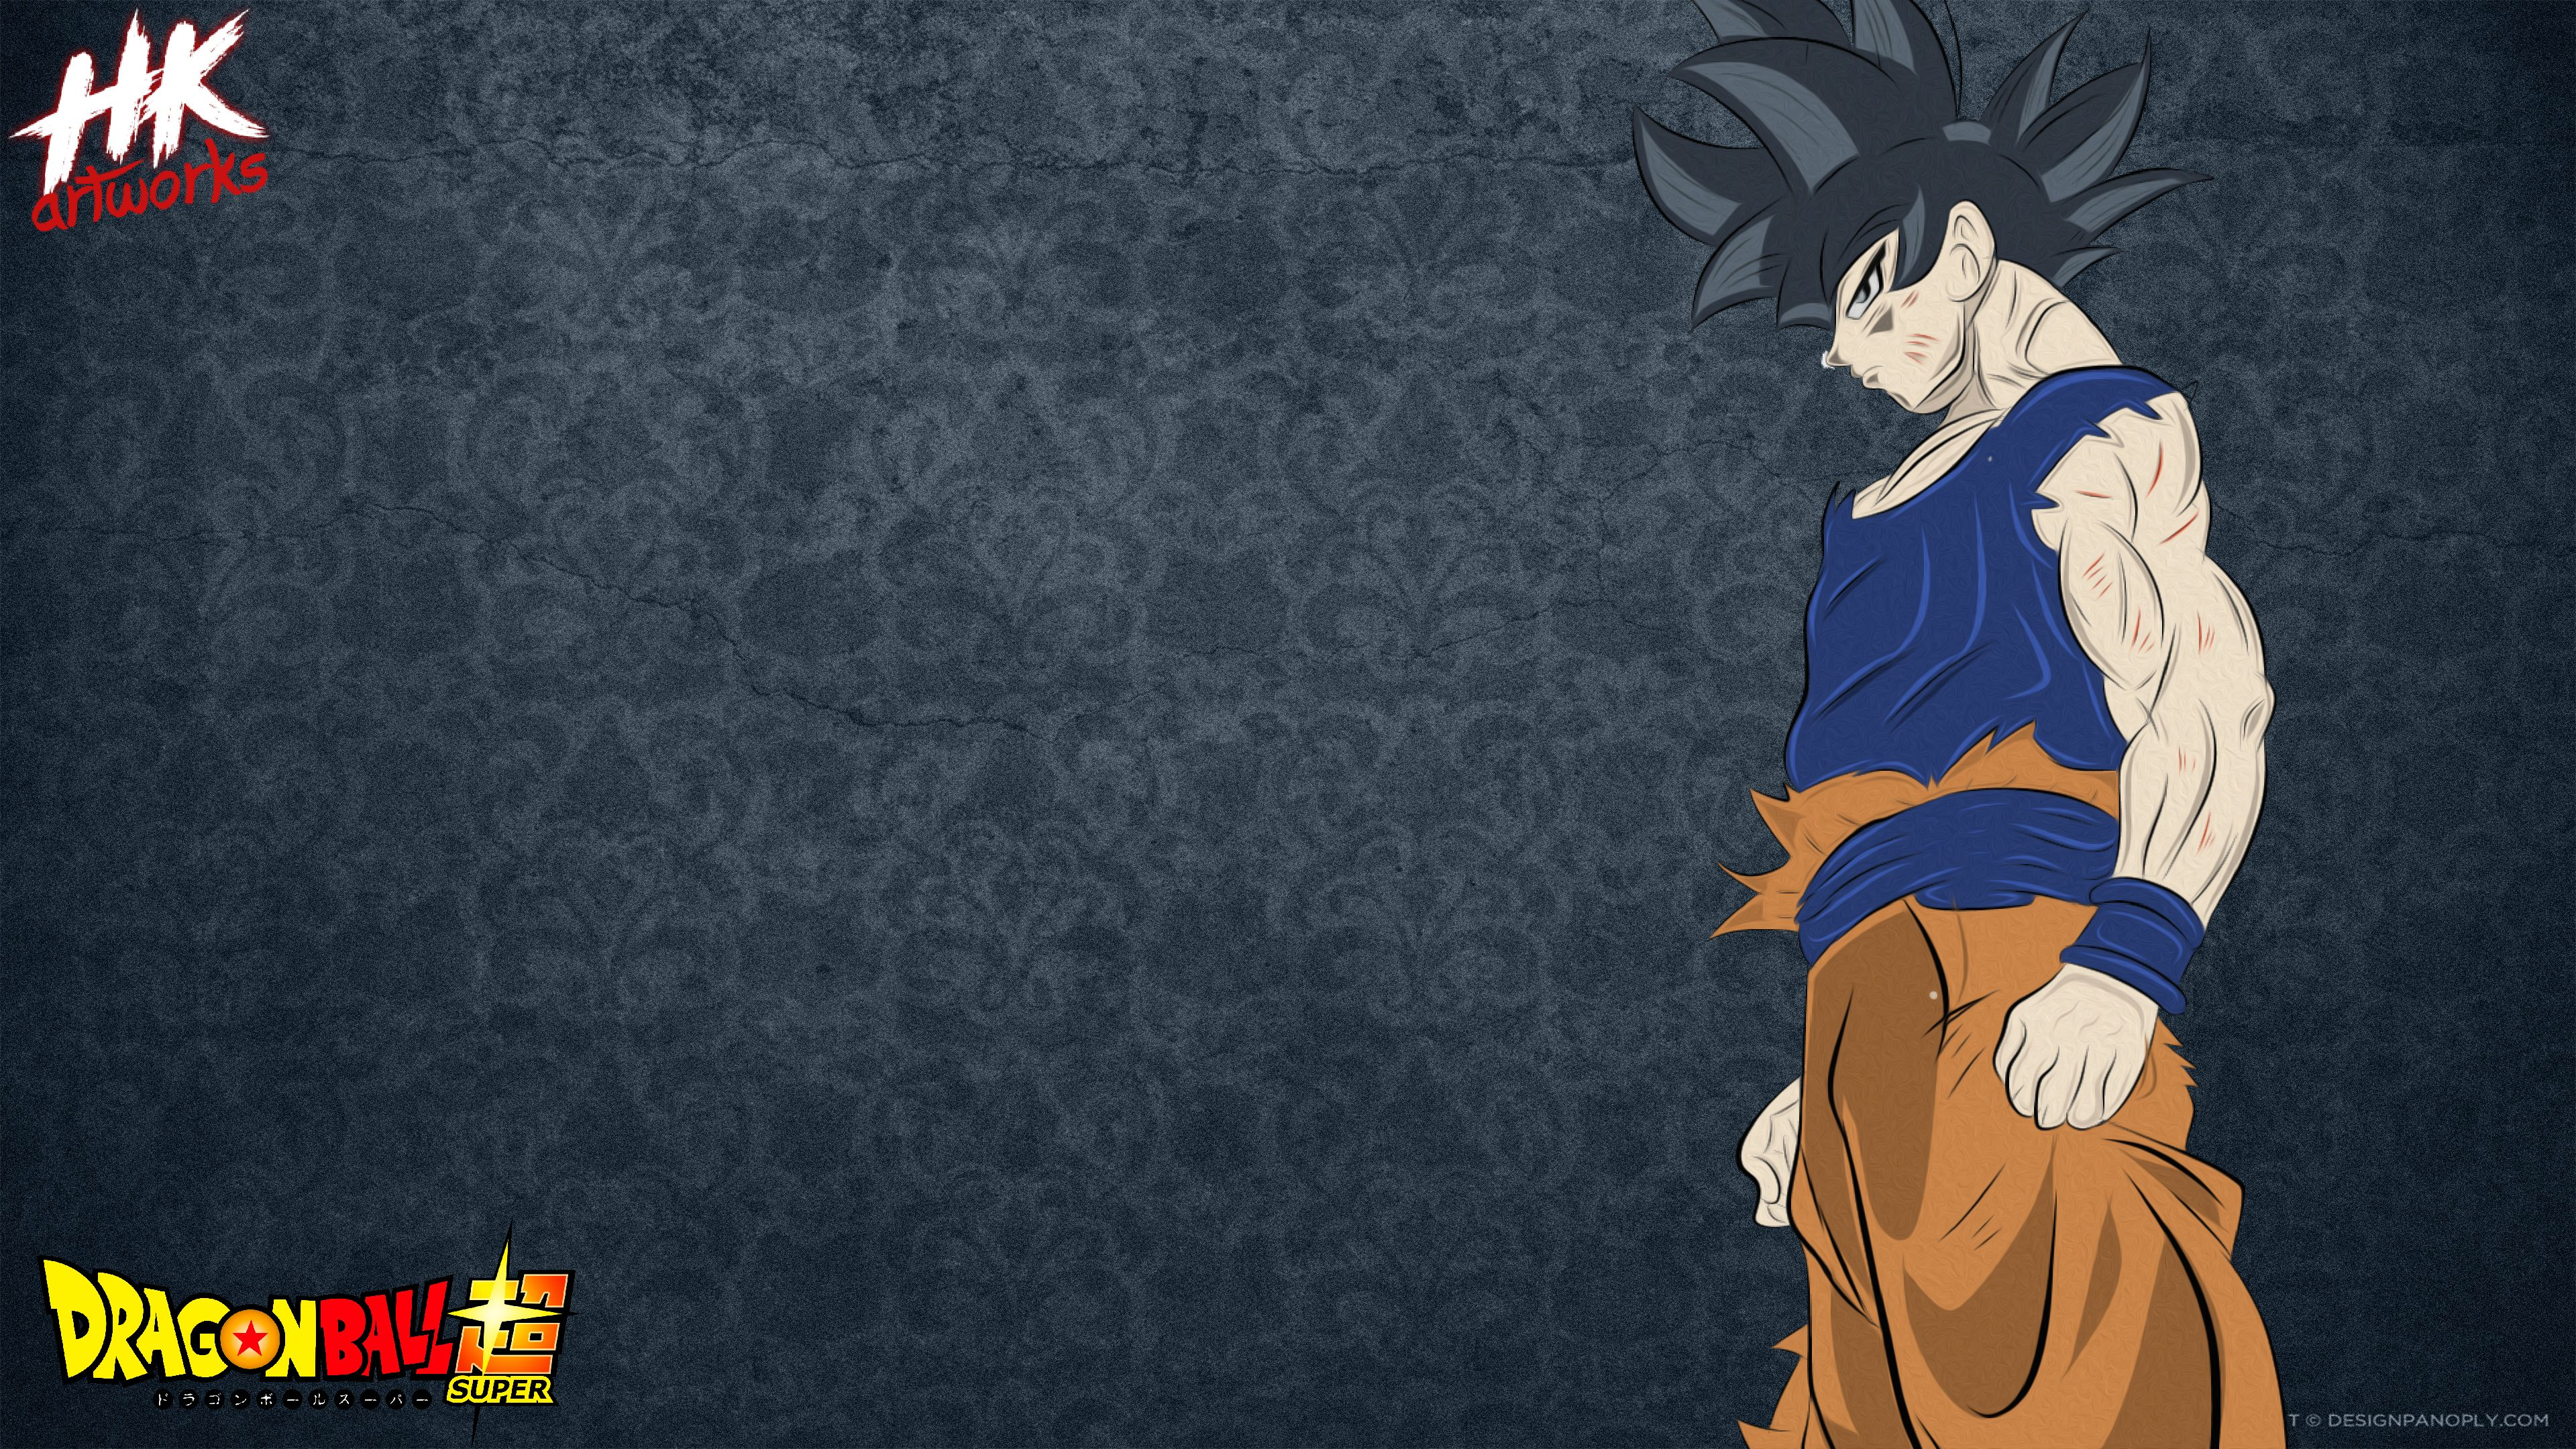 Goku Ultra Instinct Quick Drawing Wallpaper by Hkartworks99 on ...